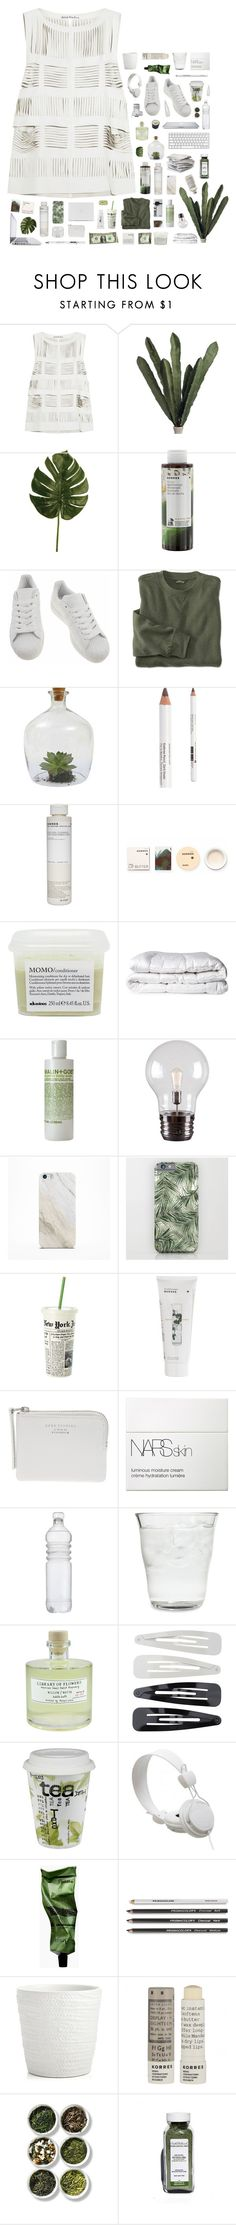 """Lighter"" by blood-drops ❤ liked on Polyvore featuring Acne Studios, Linea, Korres, adidas, Dot & Bo, Davines, Brinkhaus, (MALIN+GOETZ), Kenroy Home and Samsung"